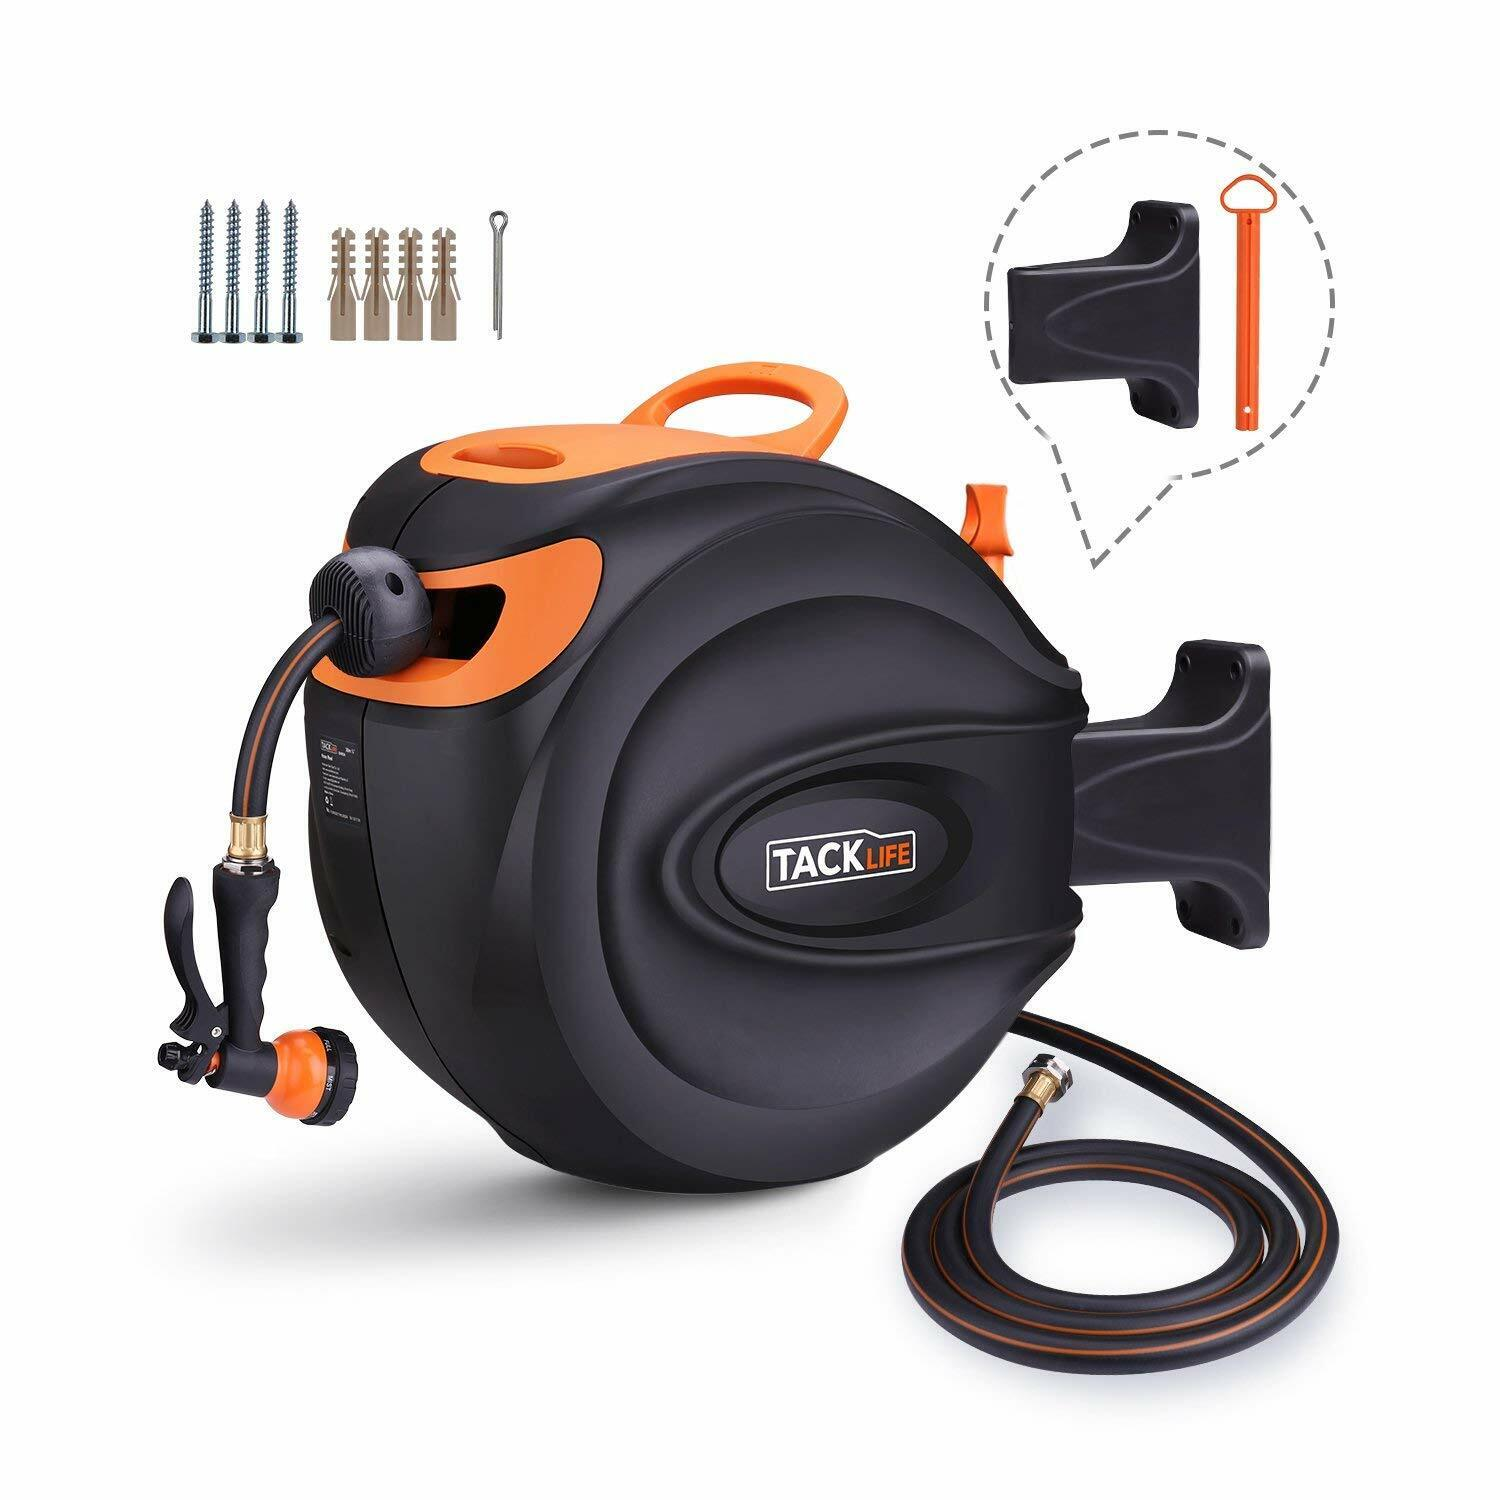 TACKLIFE Hose Reel, 65+7 FT Wall Mounted Retractable Garden